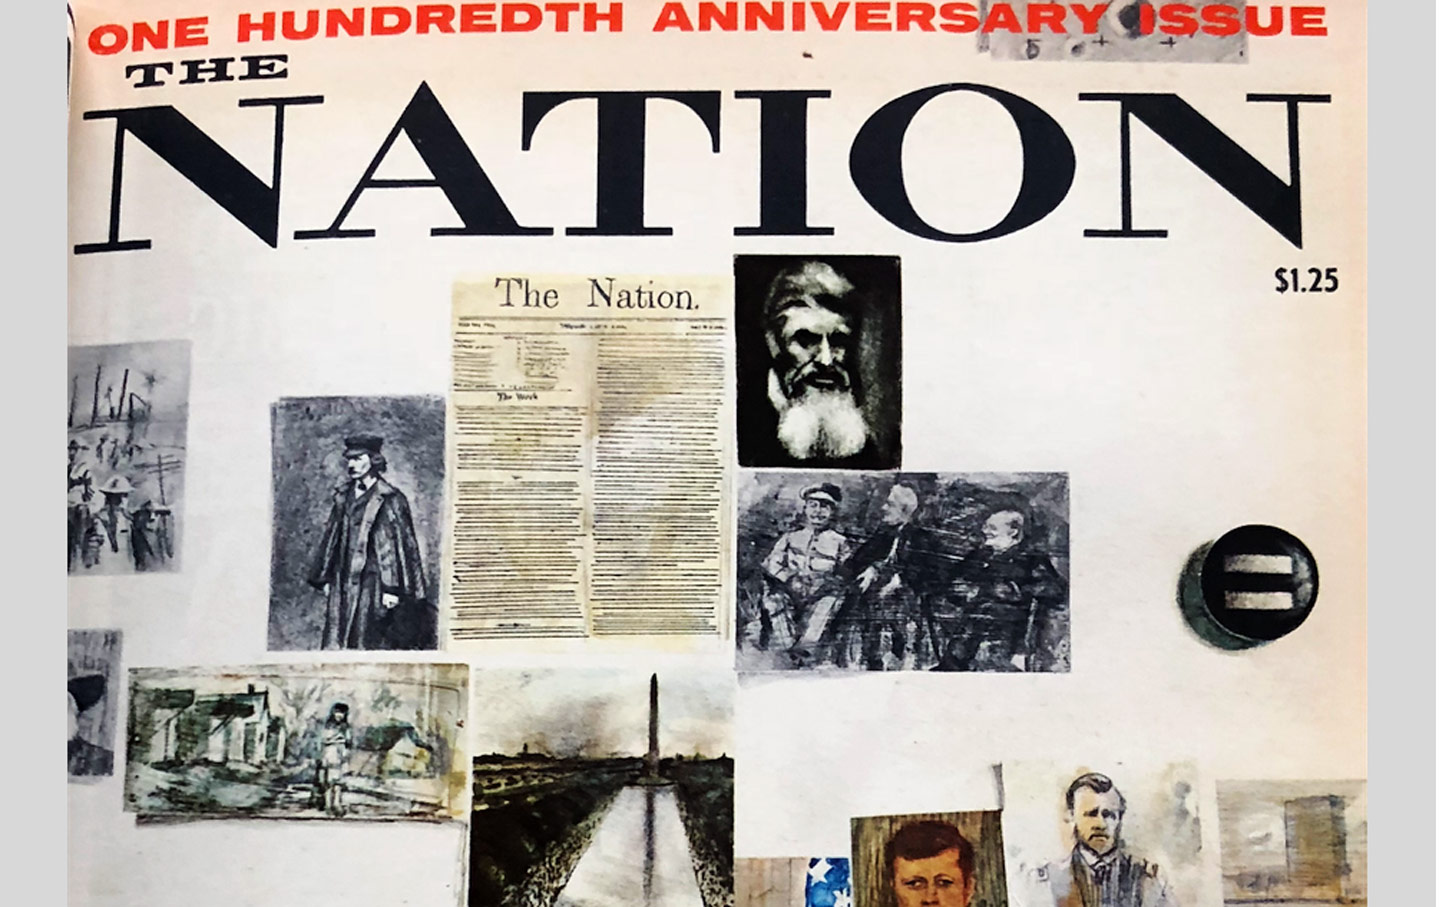 The Nation 100th Anniversary cover